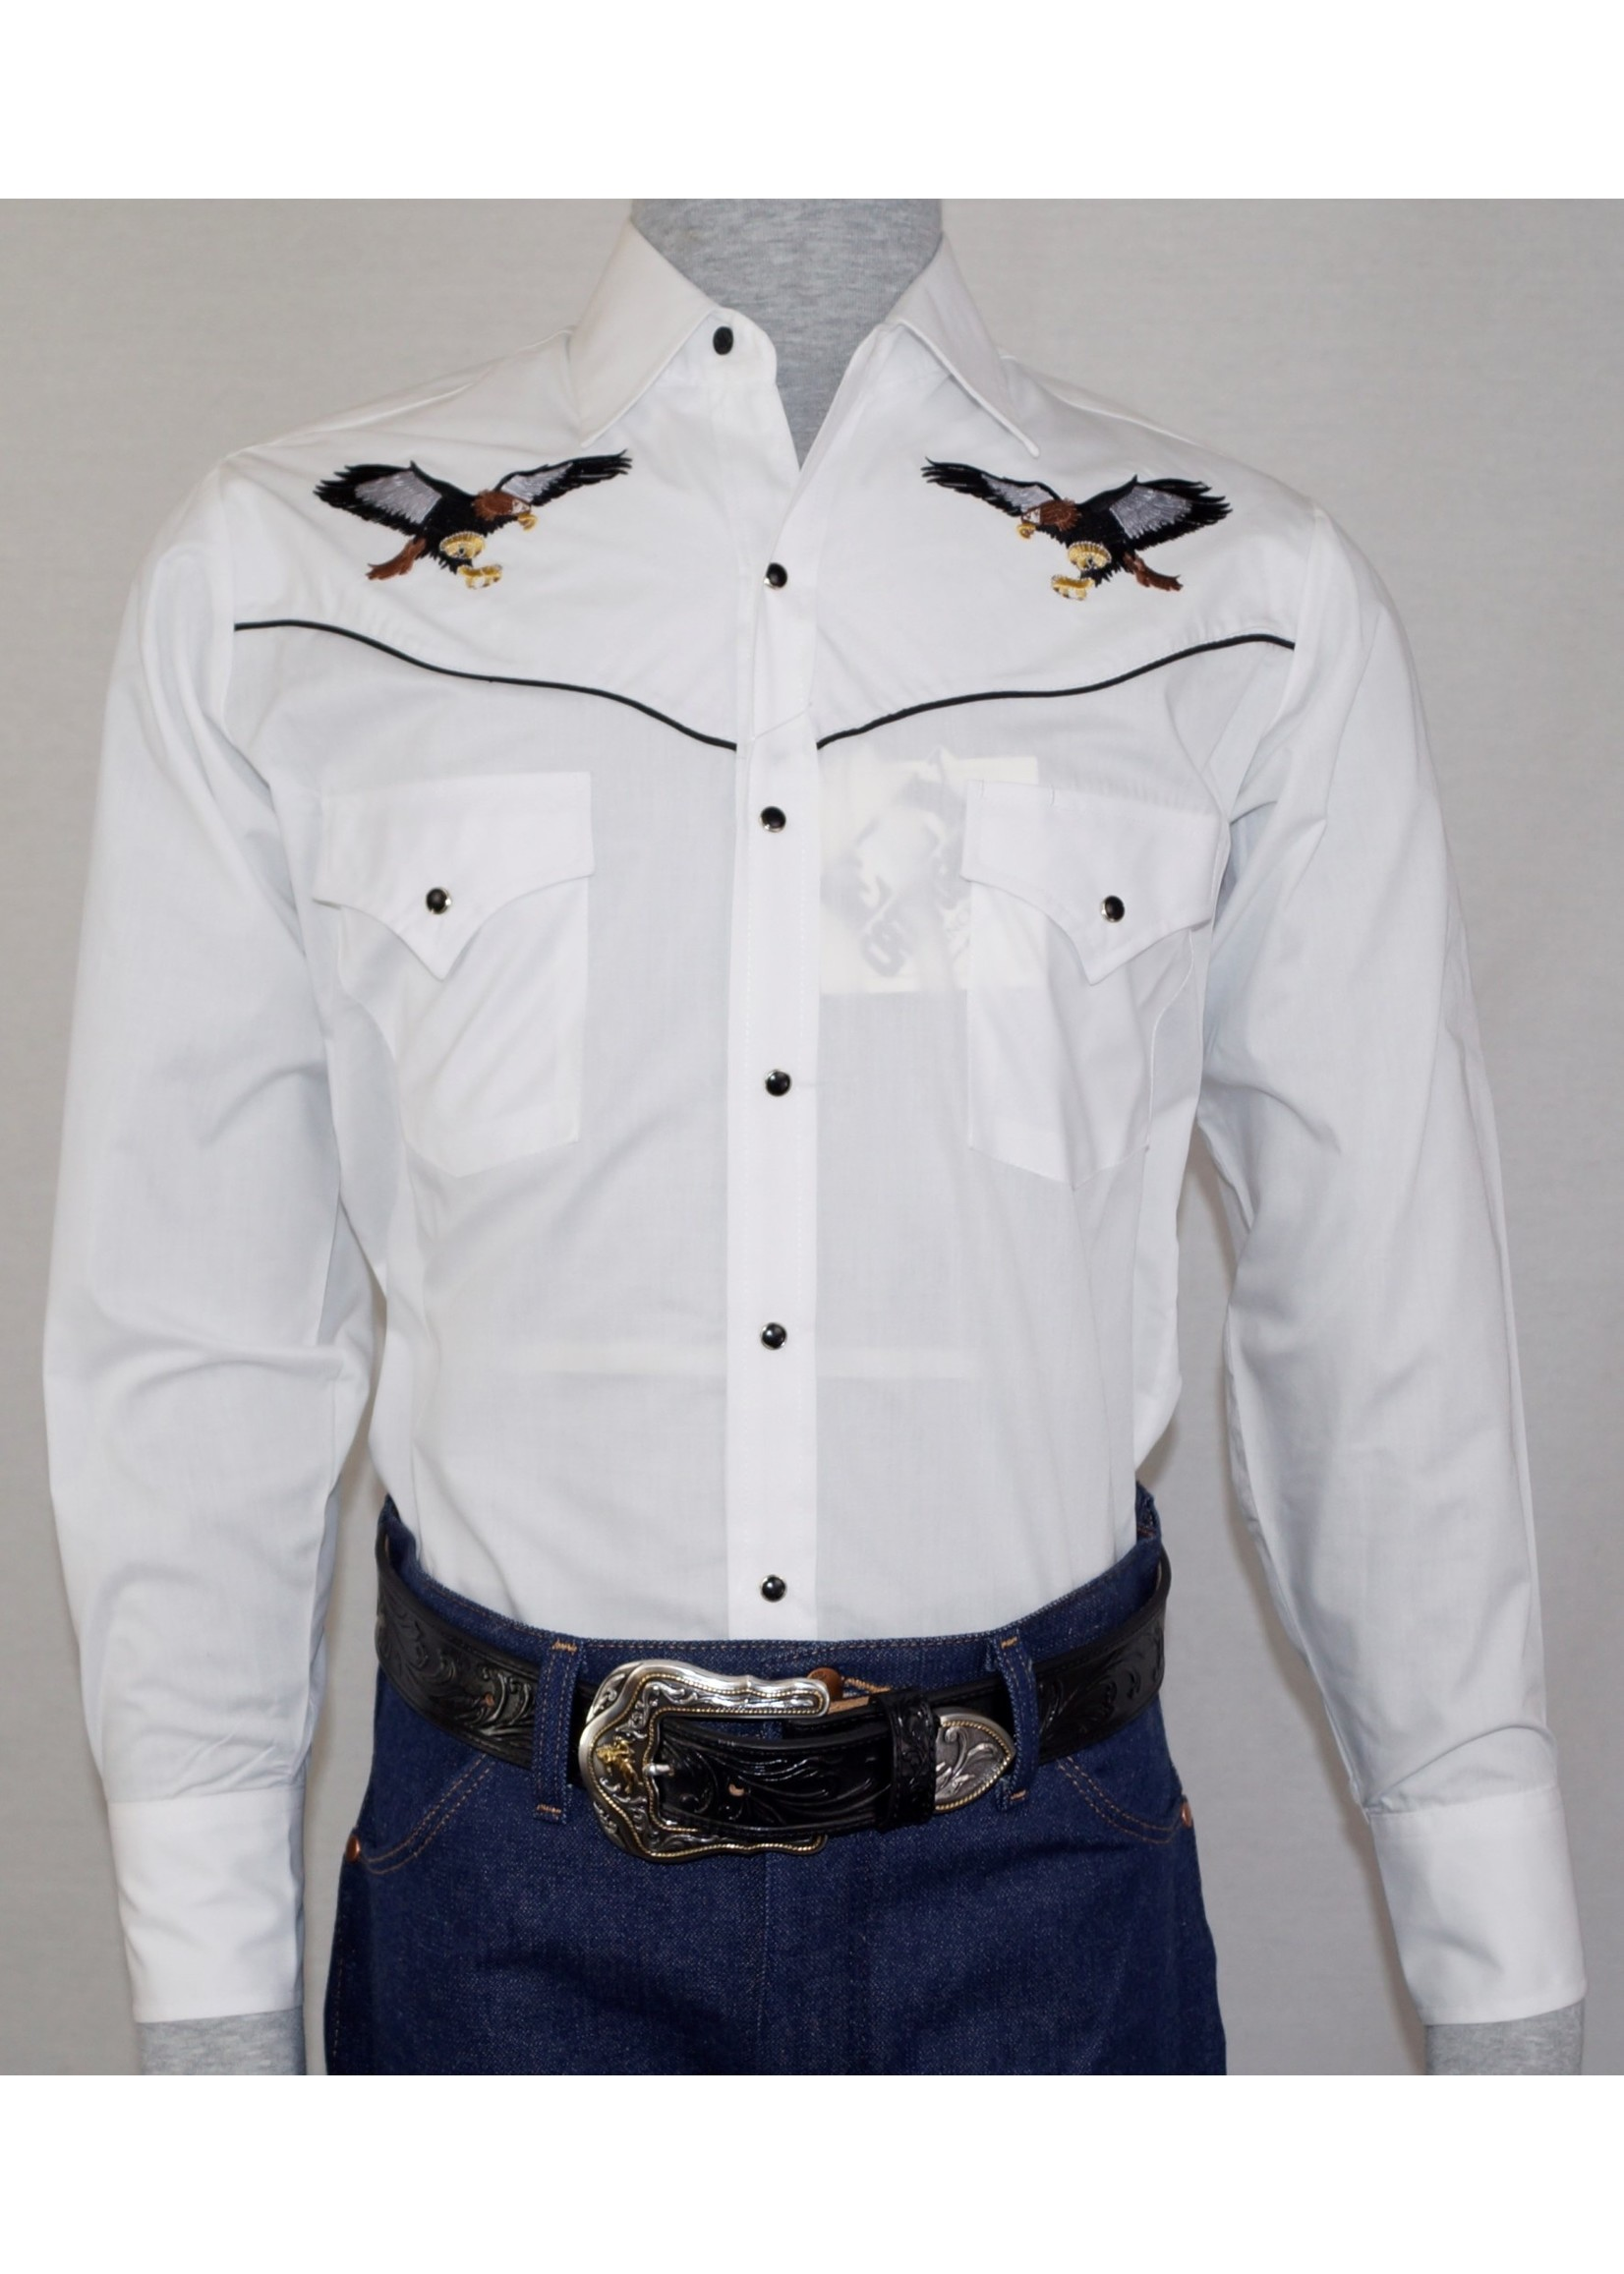 Ely Men's White Long Sleeve Western Shirt with Eagle Embroidery